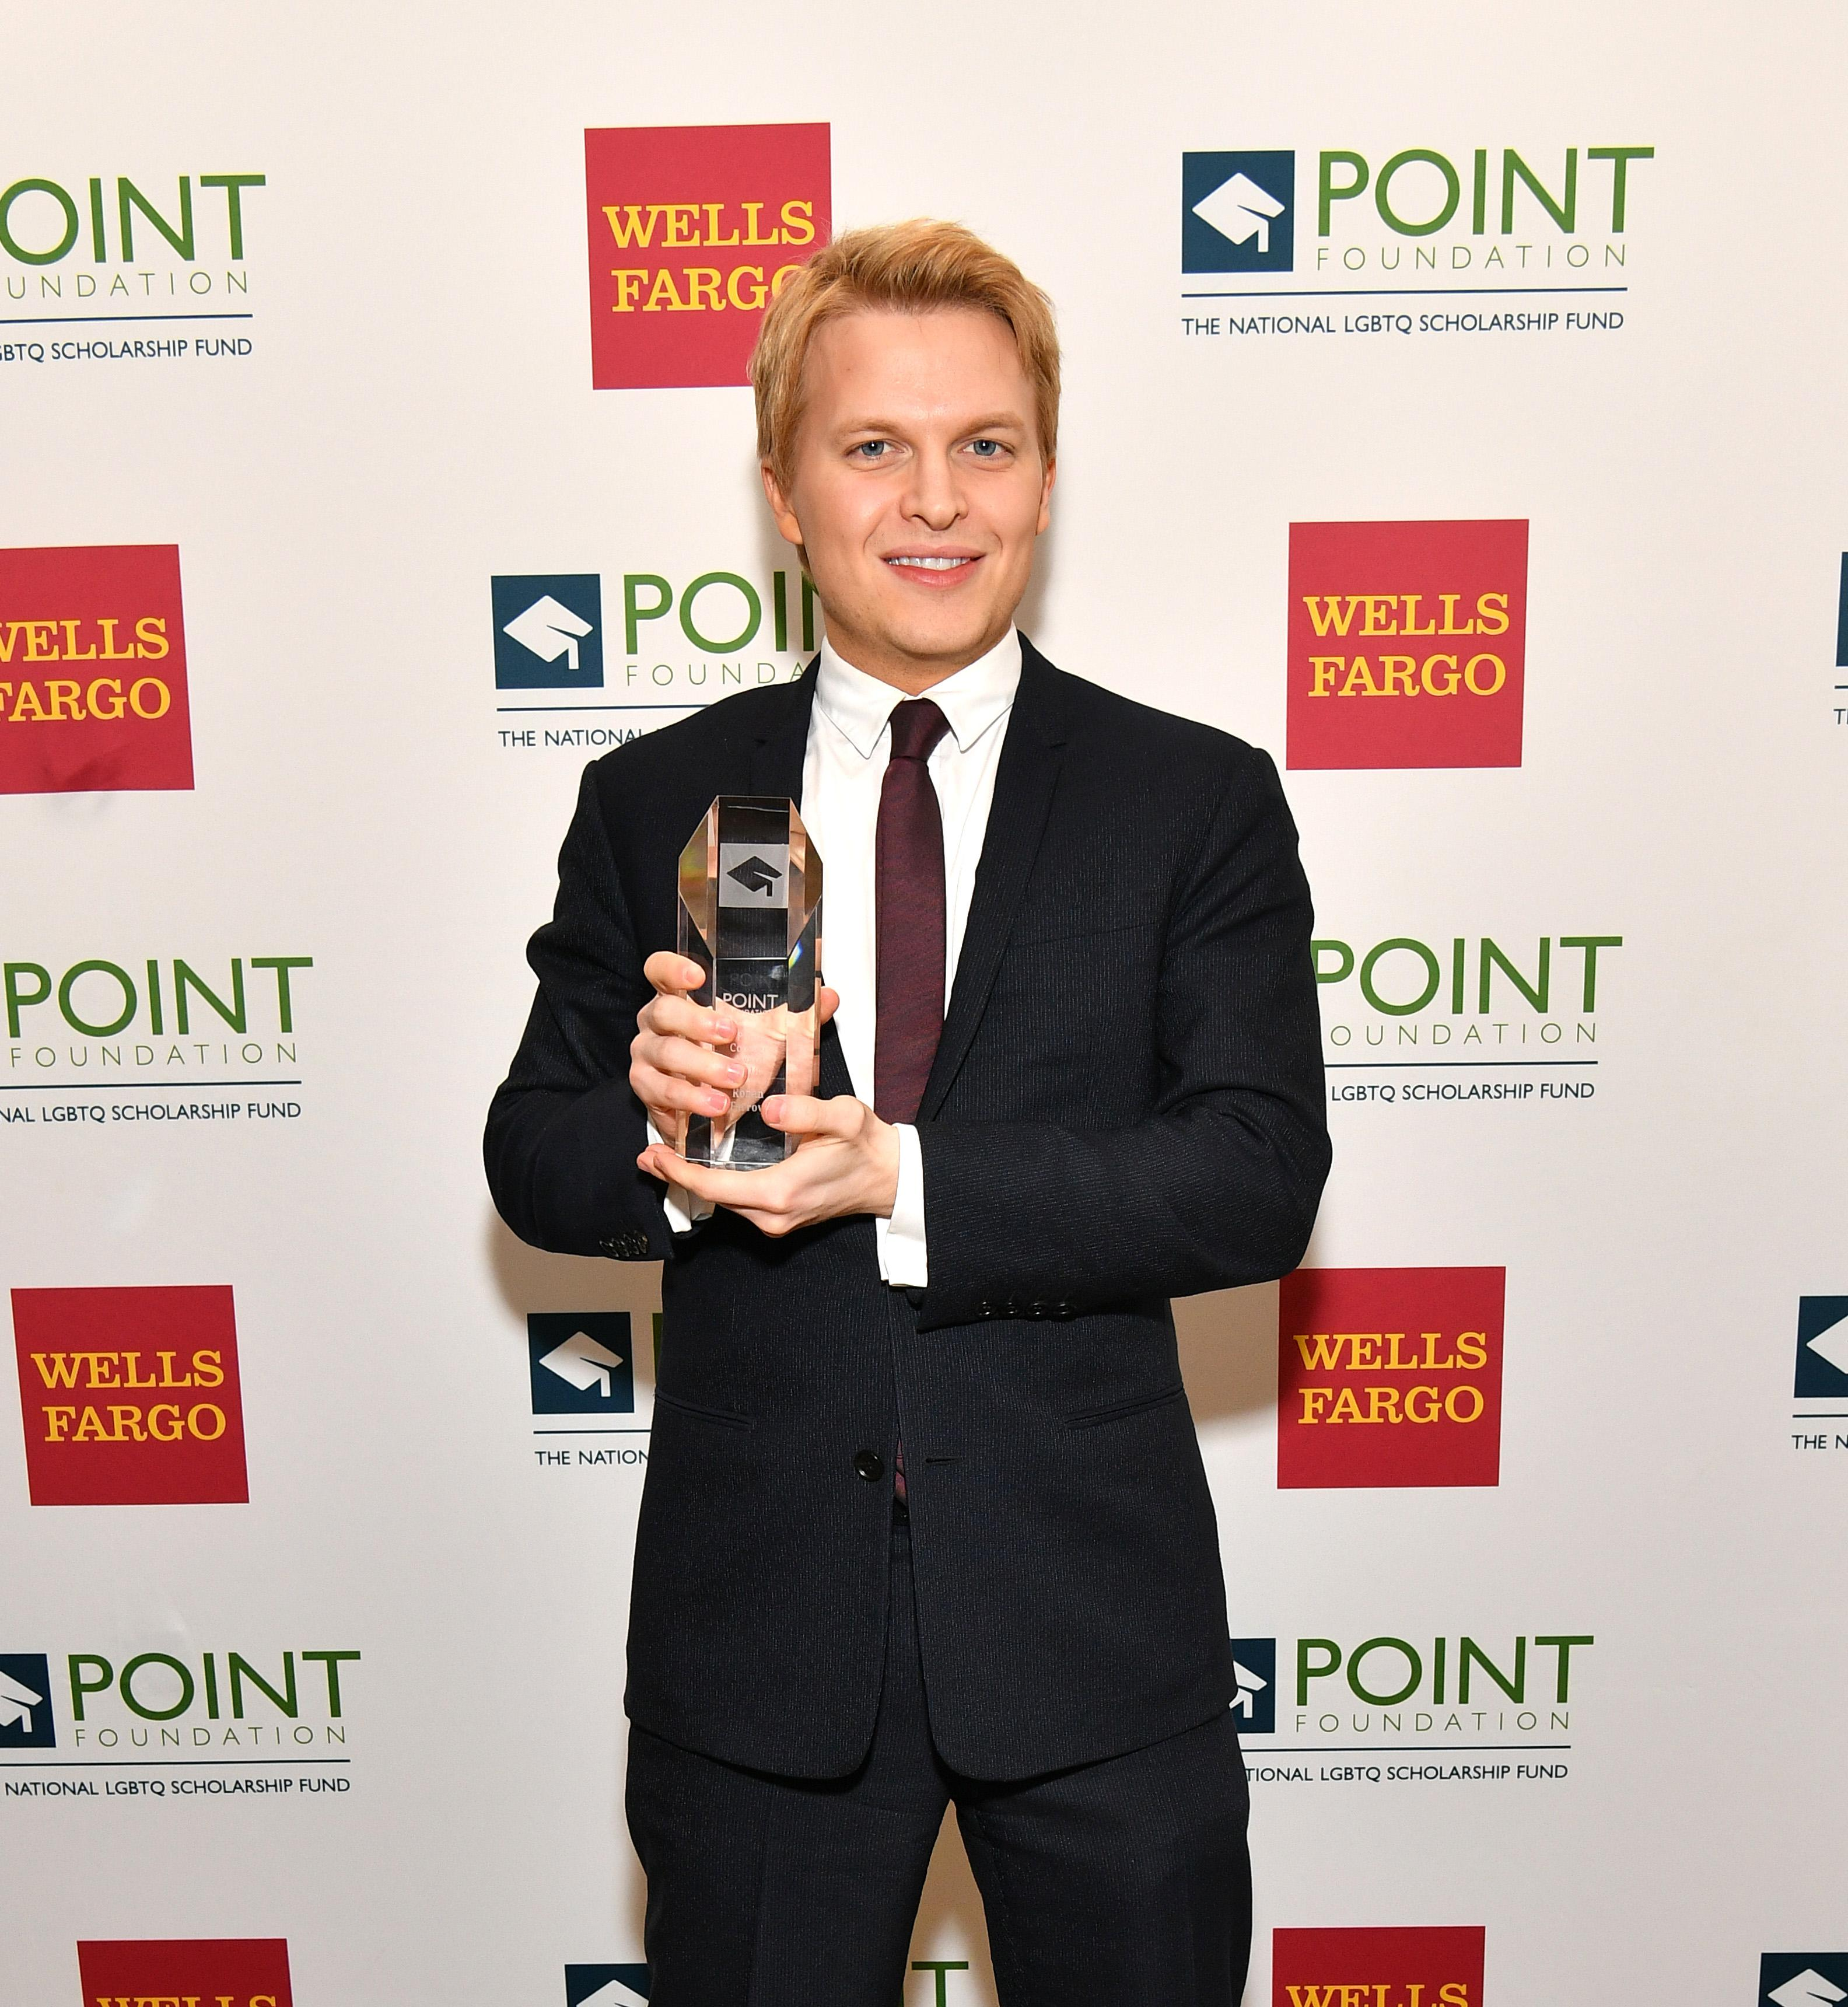 Ronan Farrow poses with an award at The Plaza Hotel on April 9, 2018 in New York City.